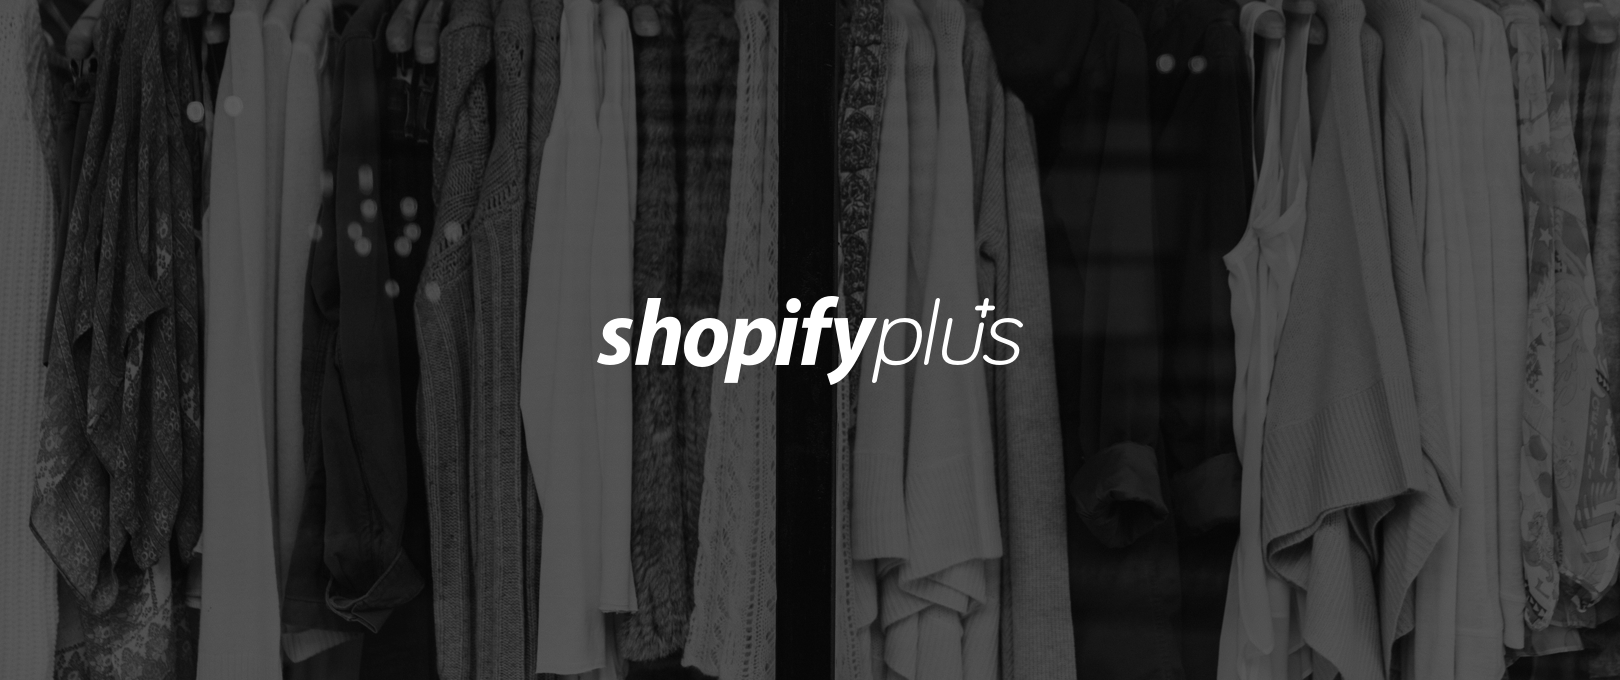 How Customizable Is Shopify? Standing Out at Scale Without Giving Up Control